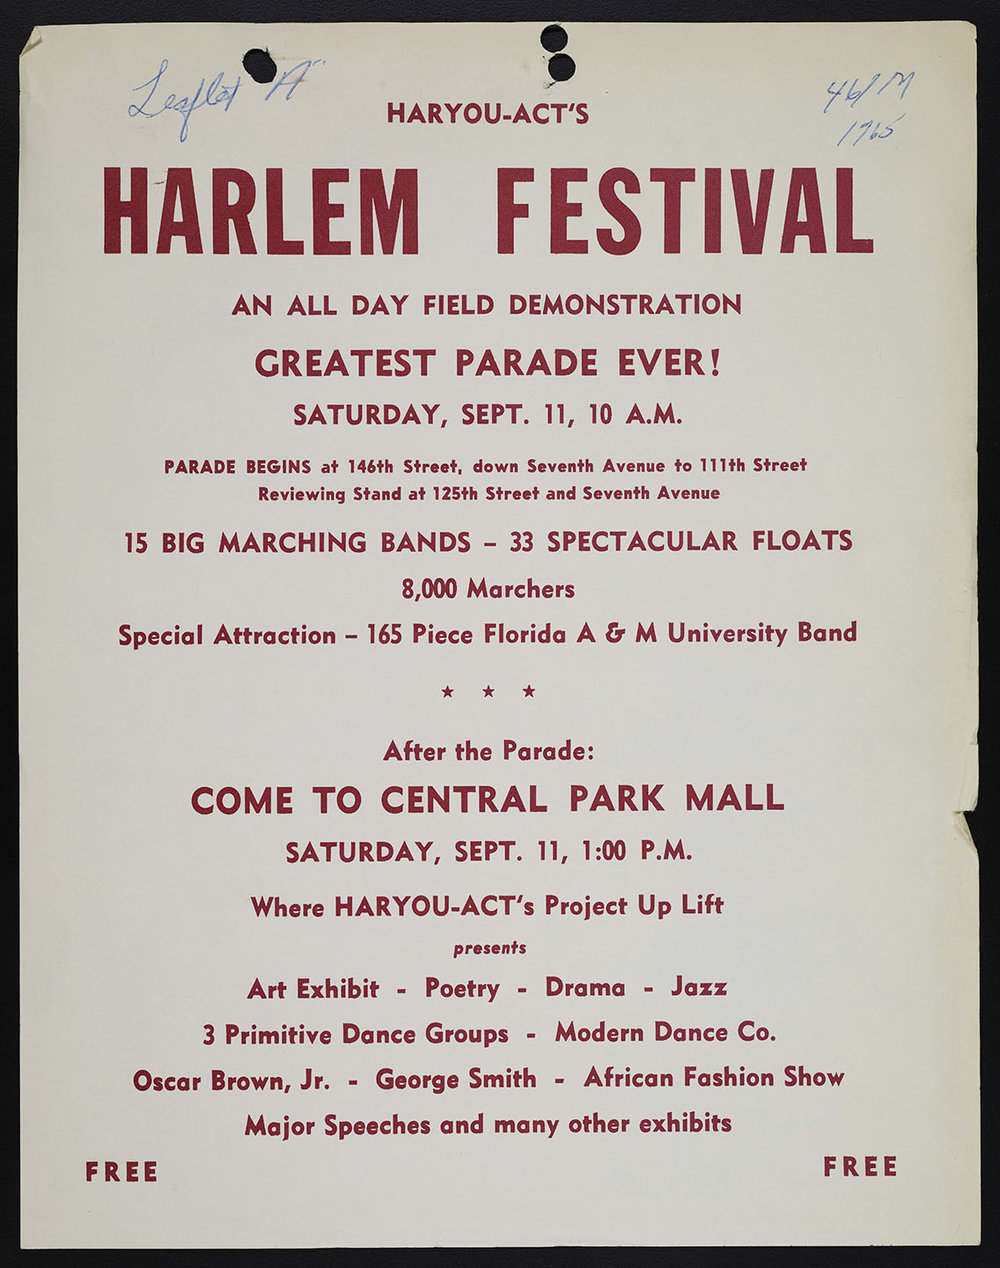 Flyer for festival and parade organized by HARYOU-ACT. NYPD Intelligence Division Records, NYC Municipal Archives.